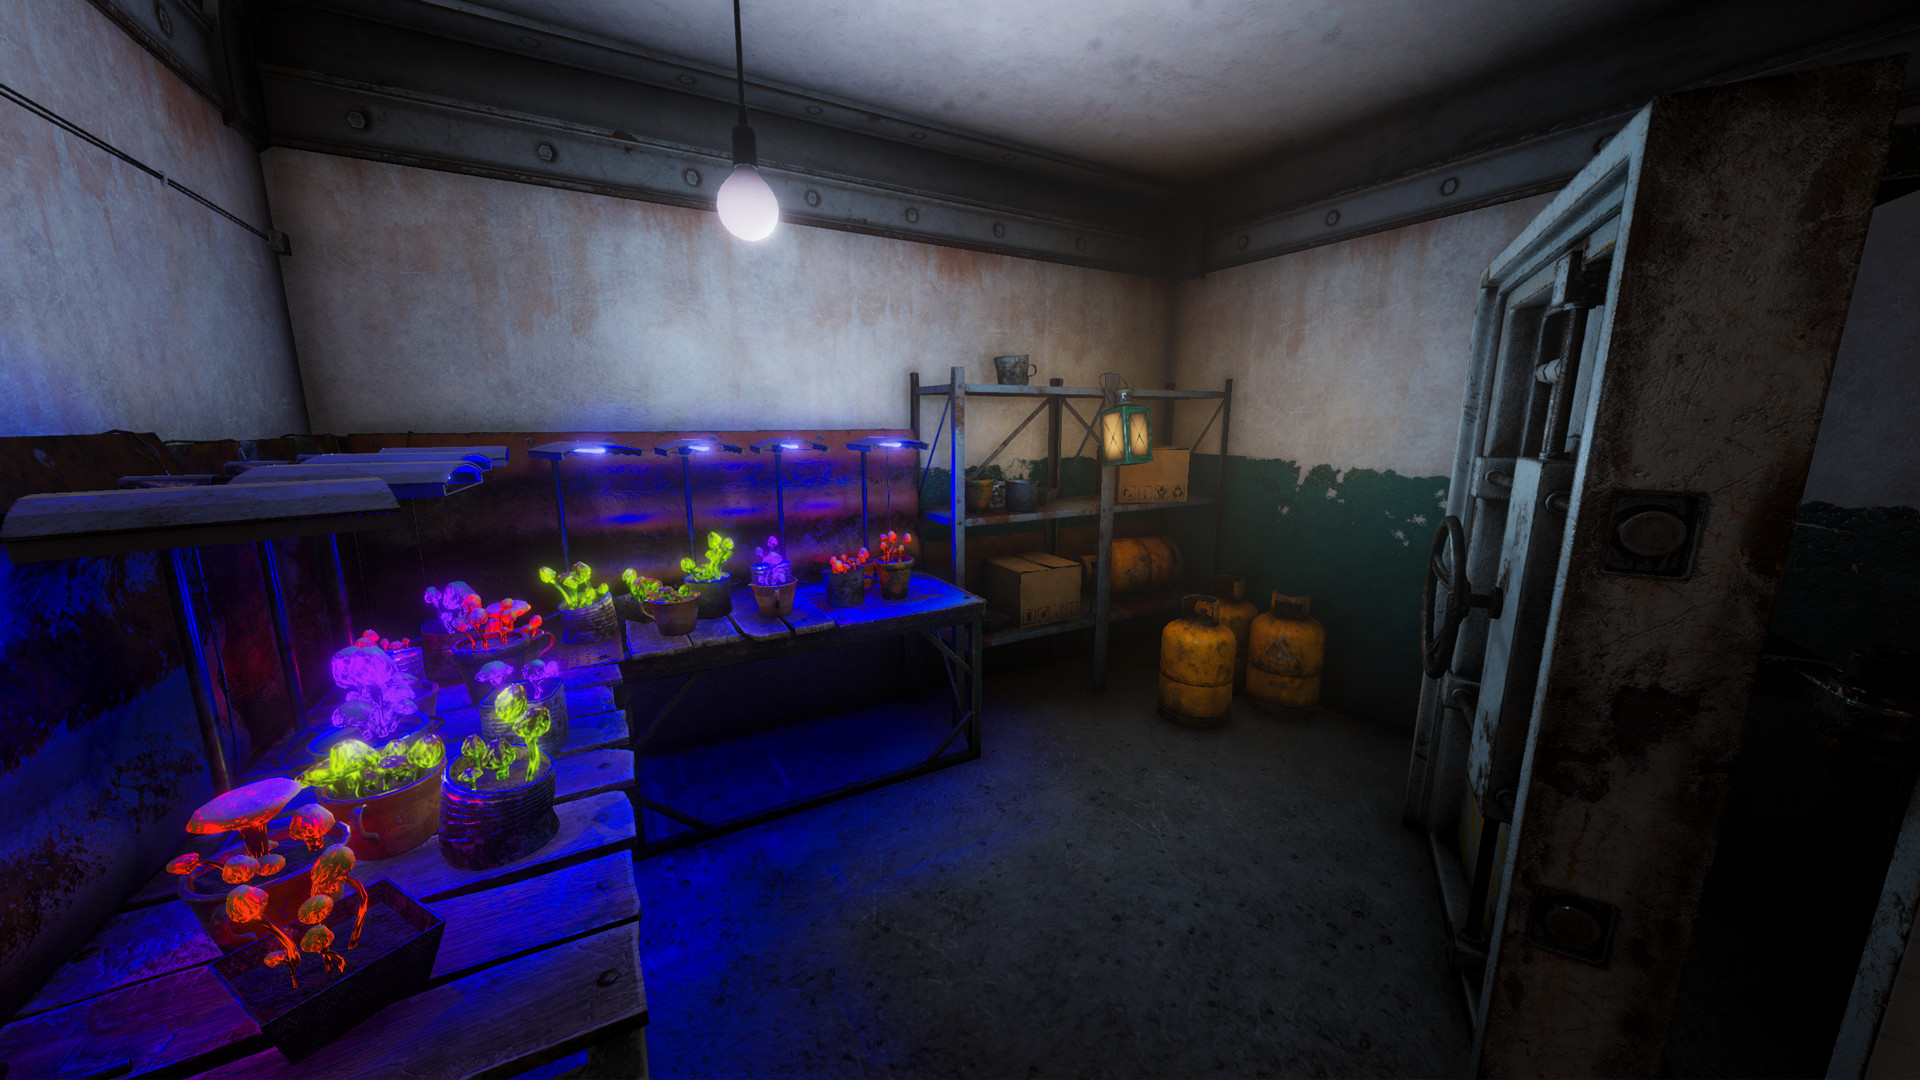 There's going to be a post-apocalyptic DLC for Cooking Simulator